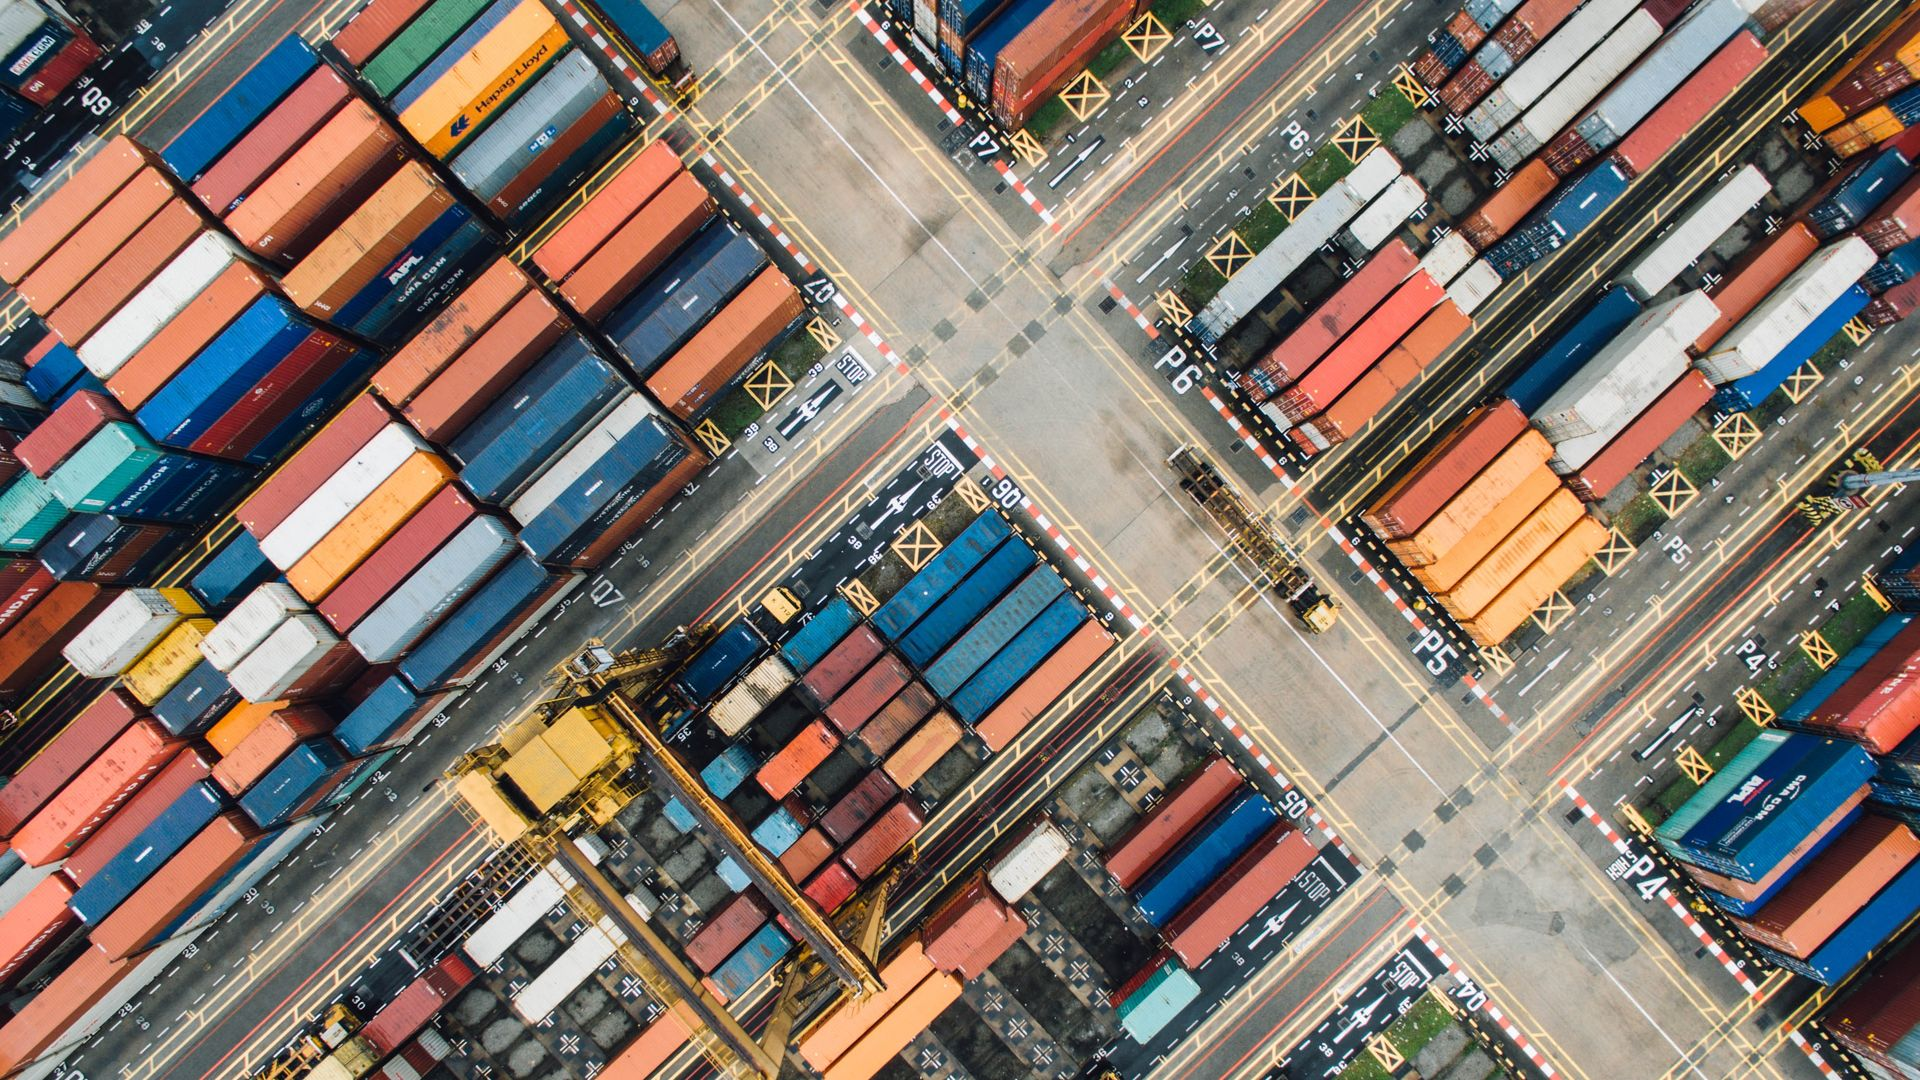 Containing Containers - Advantages and Risks